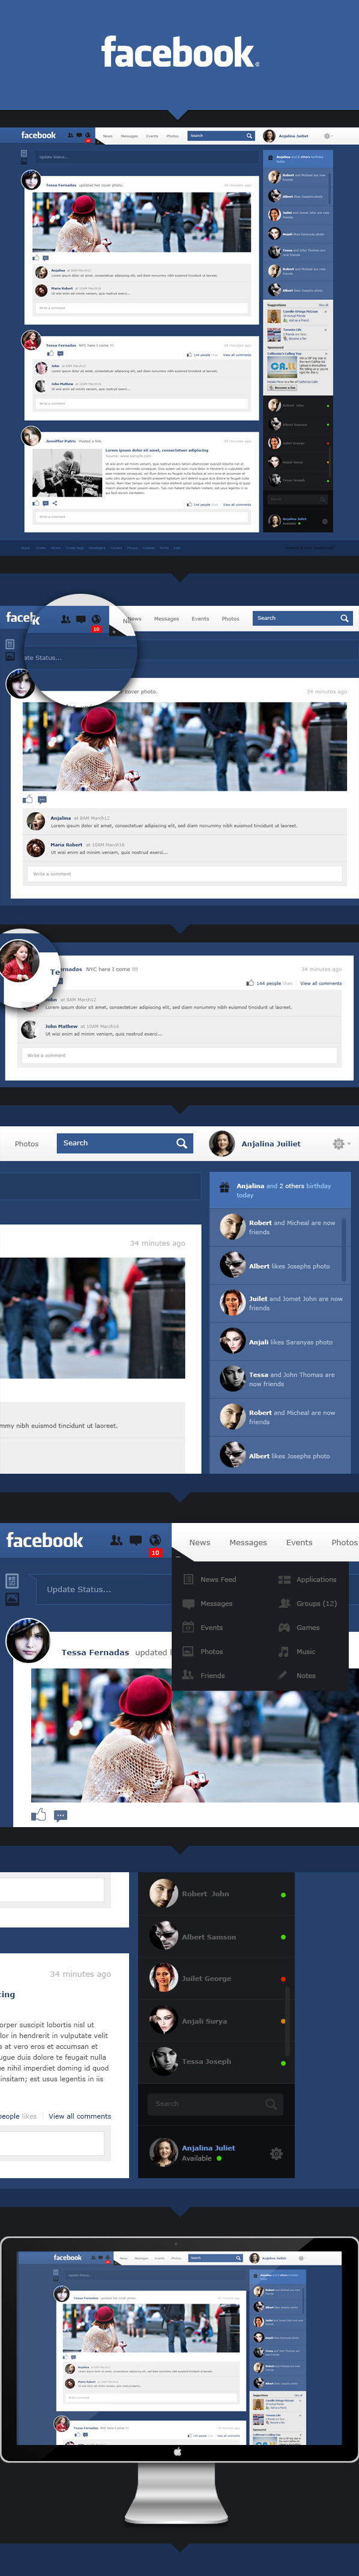 redesign-facebook-monish